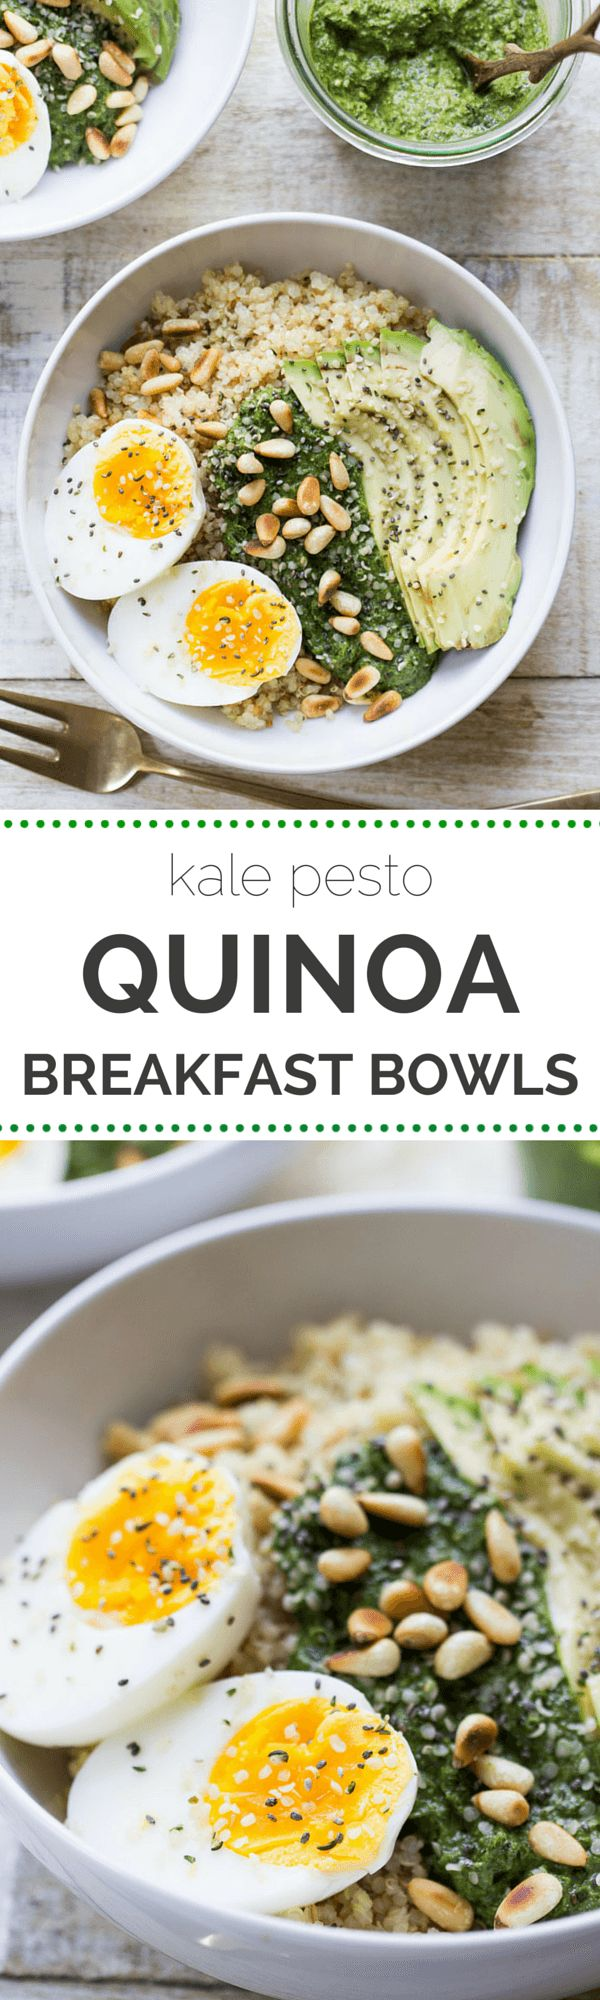 Phase 3 Savory Pesto Quinoa Breakfast Bowls - a healthy breakfast packed full of nutritional superstars. Use 1 cup cooked quinoa to serve 2.